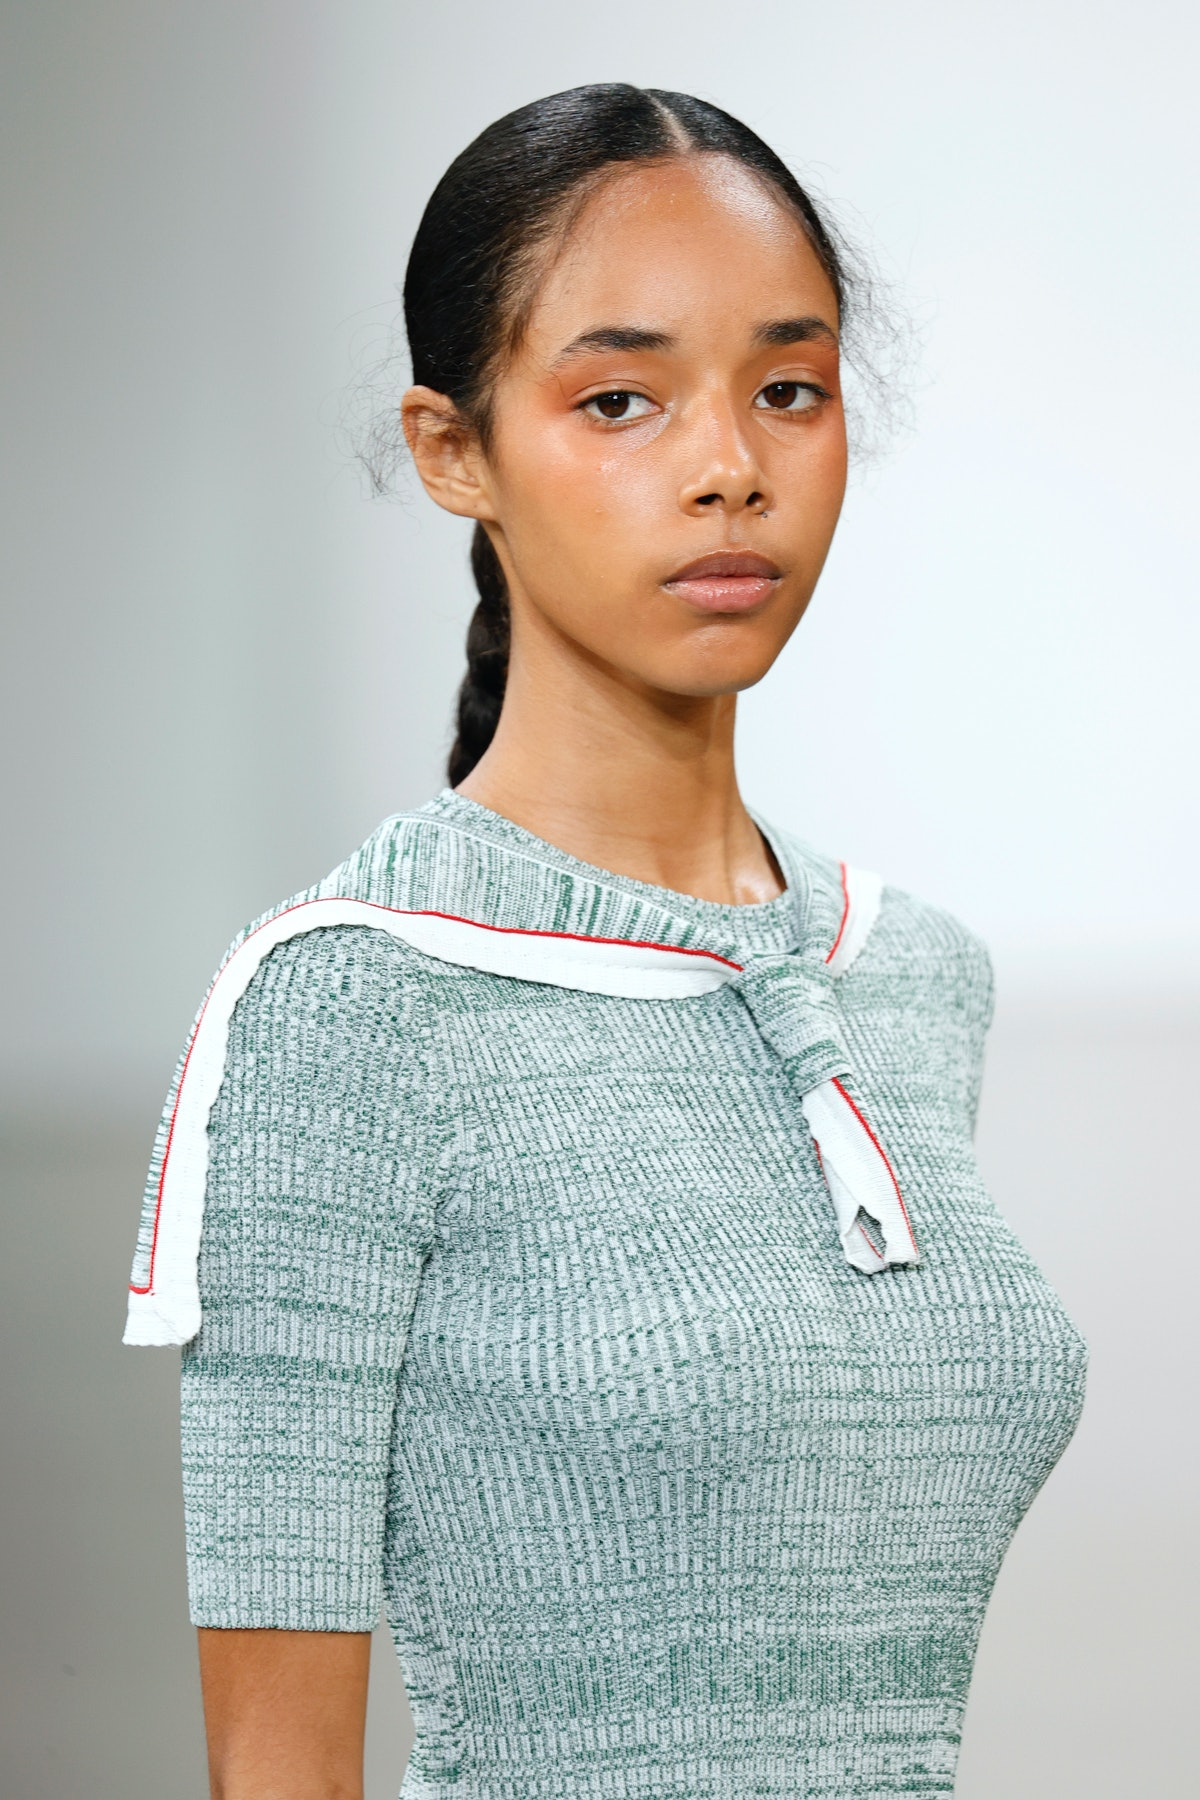 NEW YORK, NEW YORK - SEPTEMBER 09: A model walks the runway for Bevza during NYFW: The Shows at Gall...